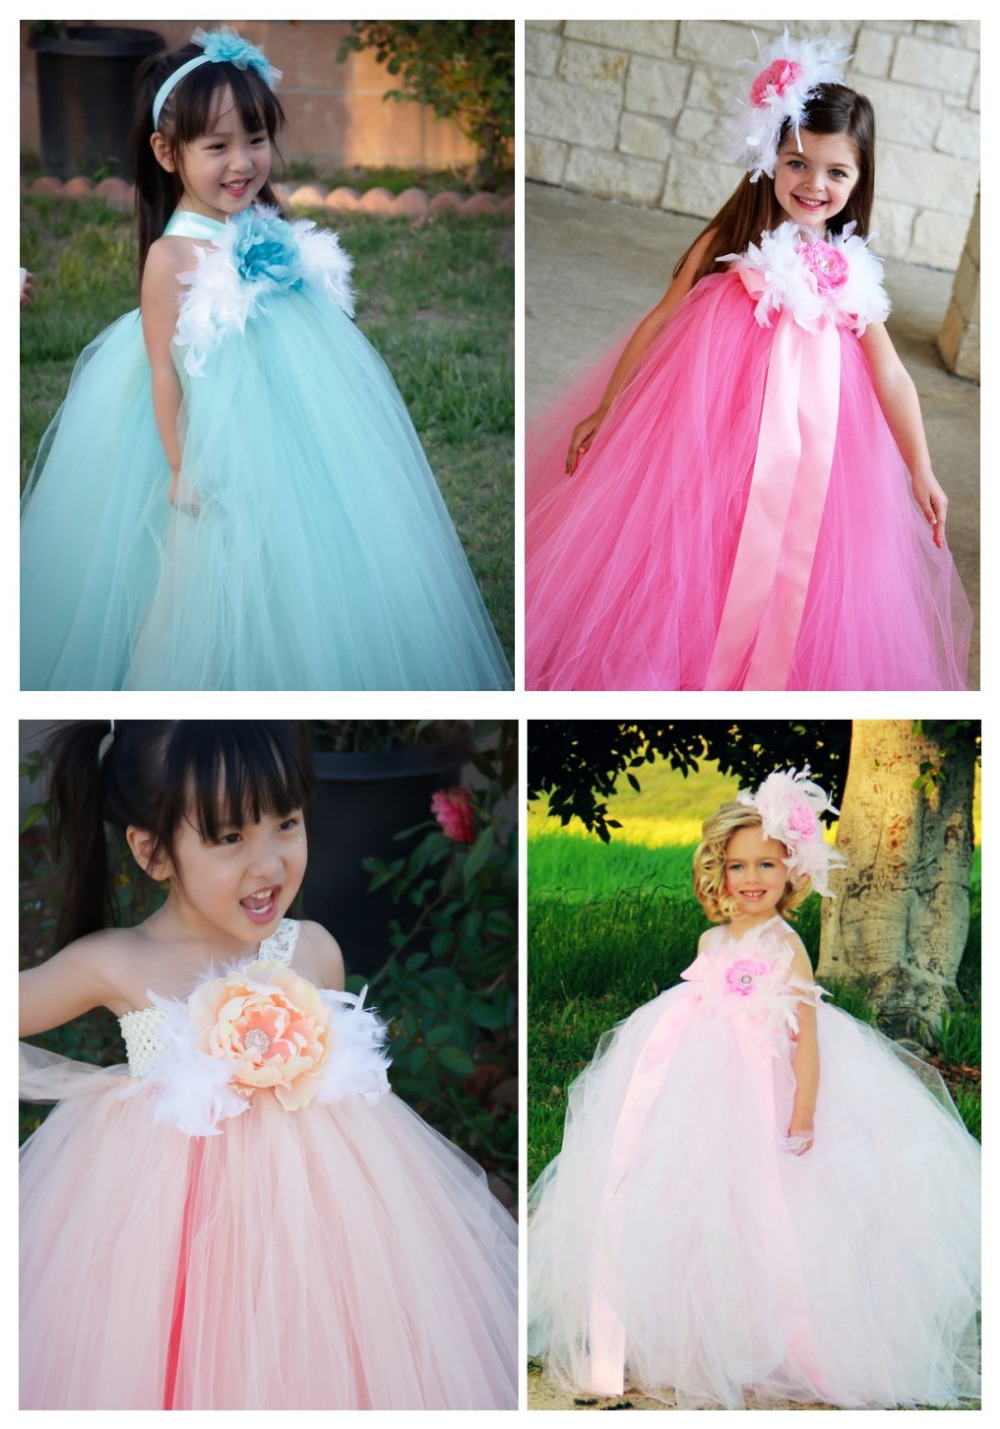 With Feather 4 Colors Flower Girl Dress For Baby Girl Wedding Evening Christmas Party Princess Tutu Set Girls Birthday Outfit<br><br>Aliexpress